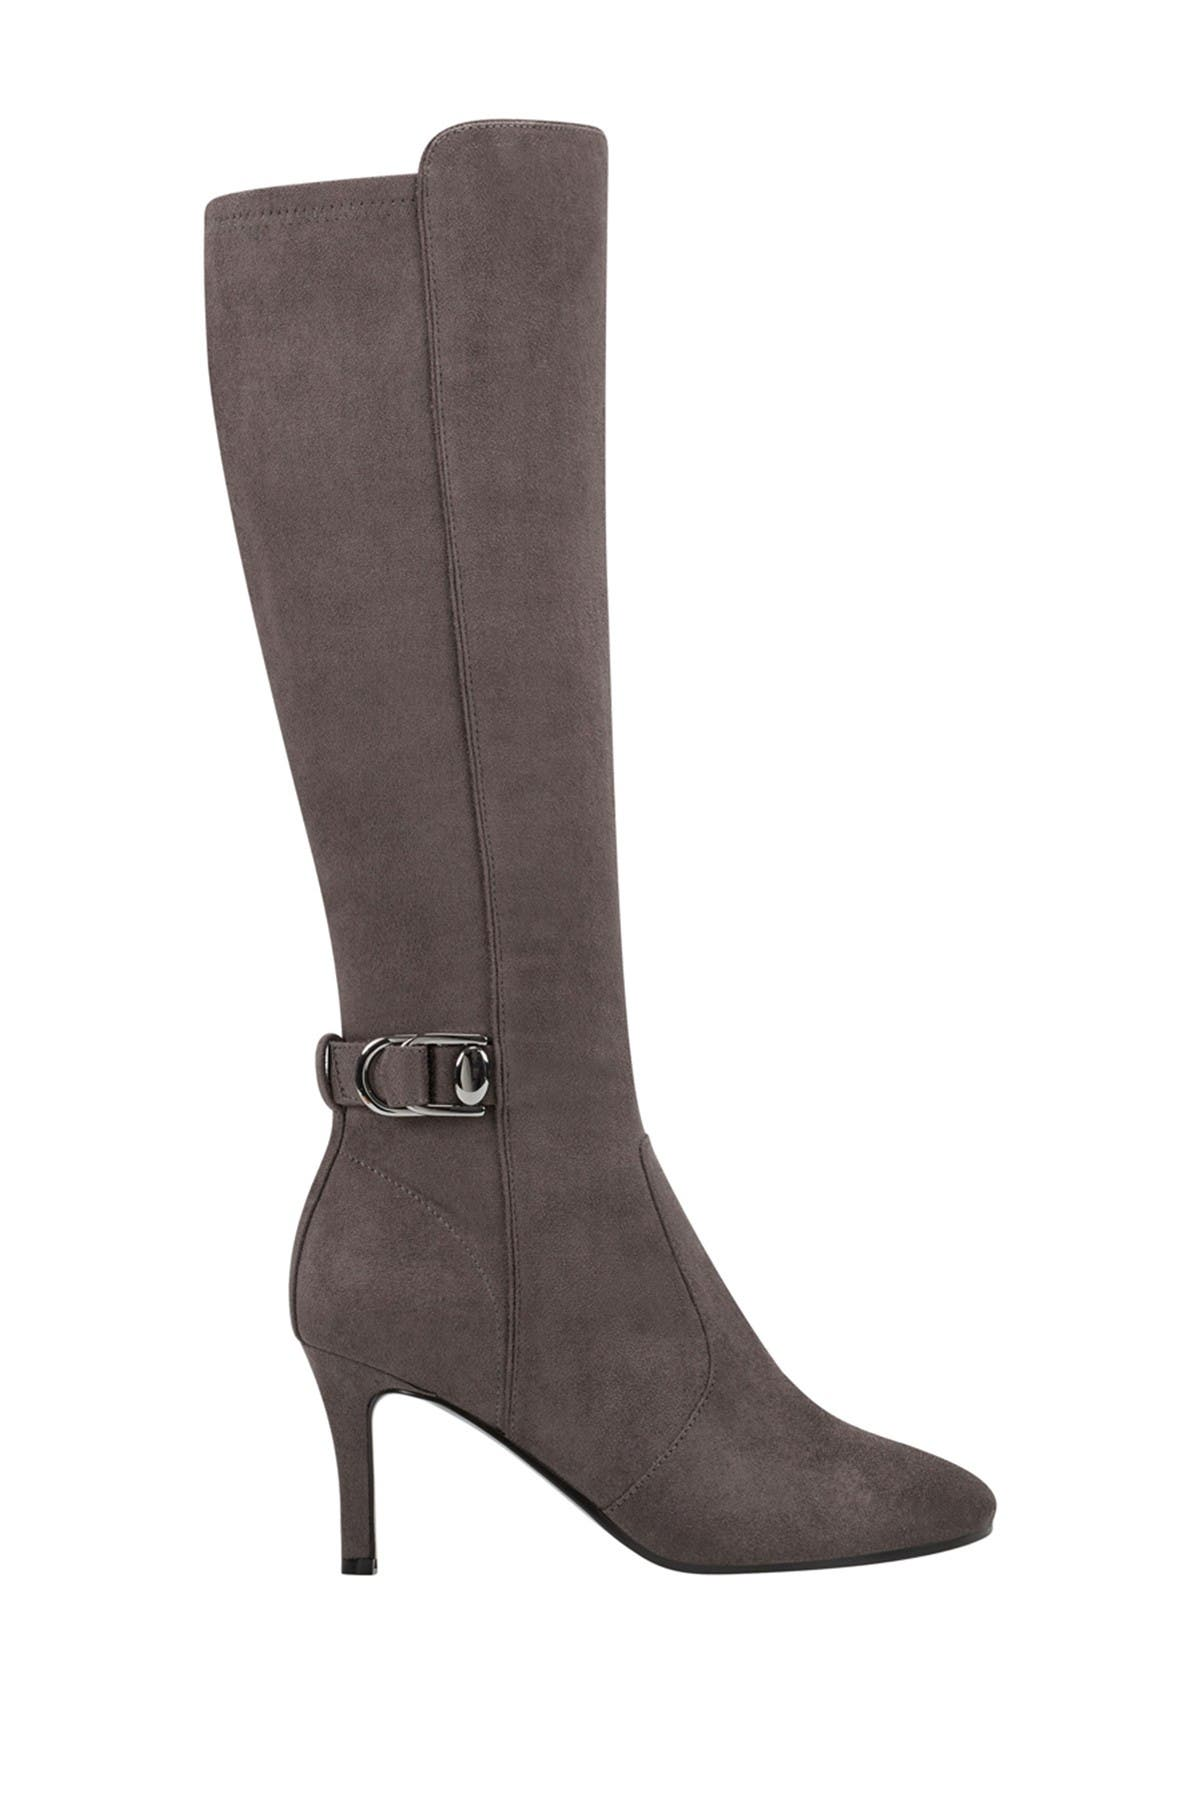 Image of Bandolino Delfie Tall Buckled Stiletto Boot